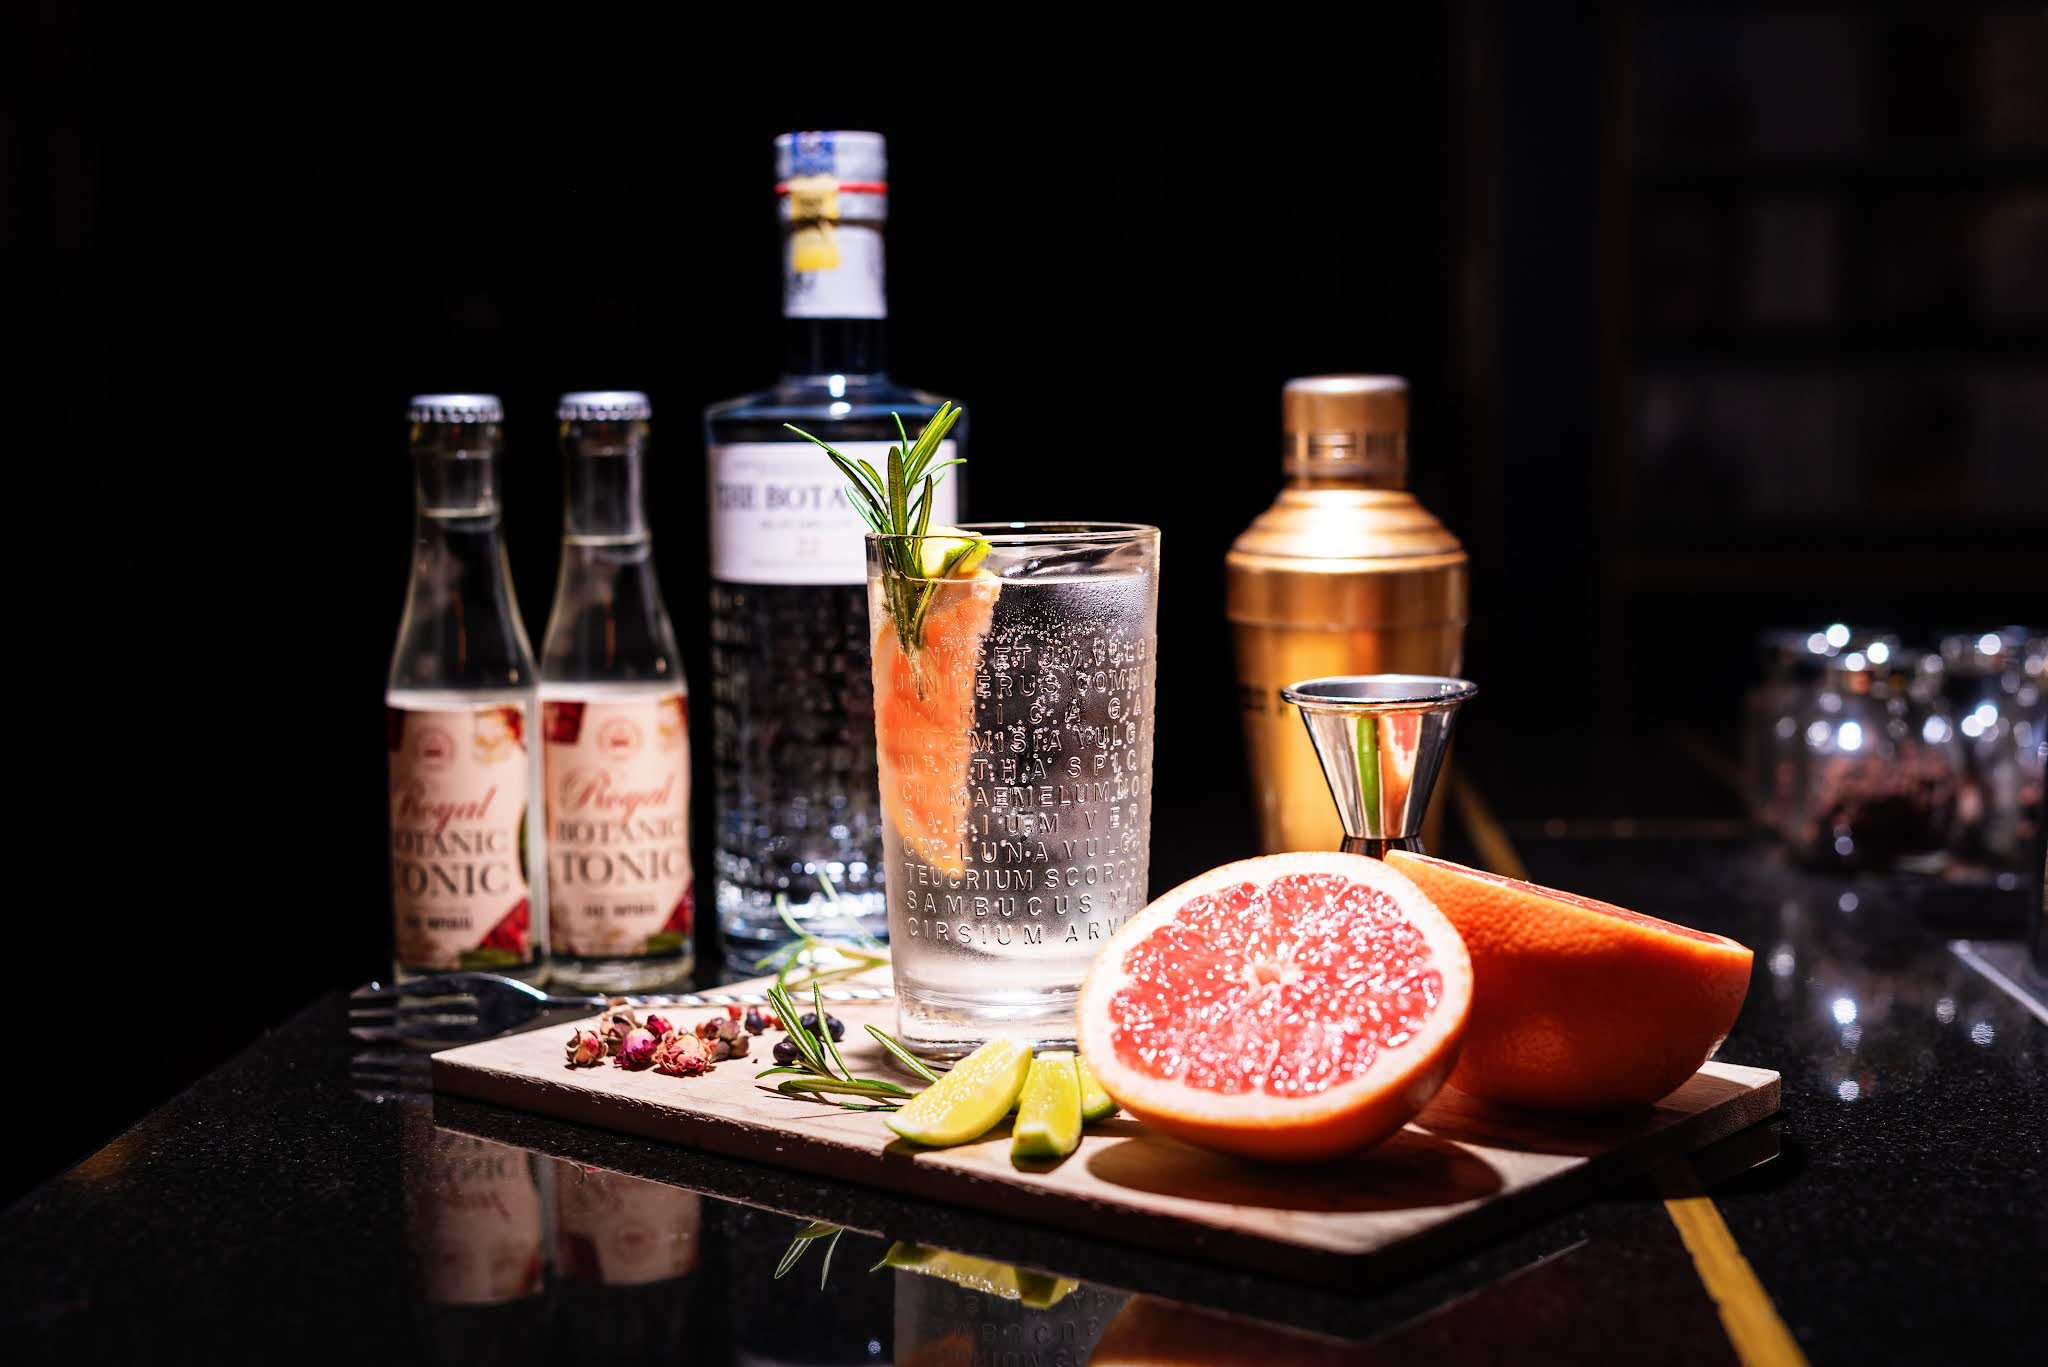 celebrate international gin & tonic day with the royal botanist & tonic cocktail to try at home